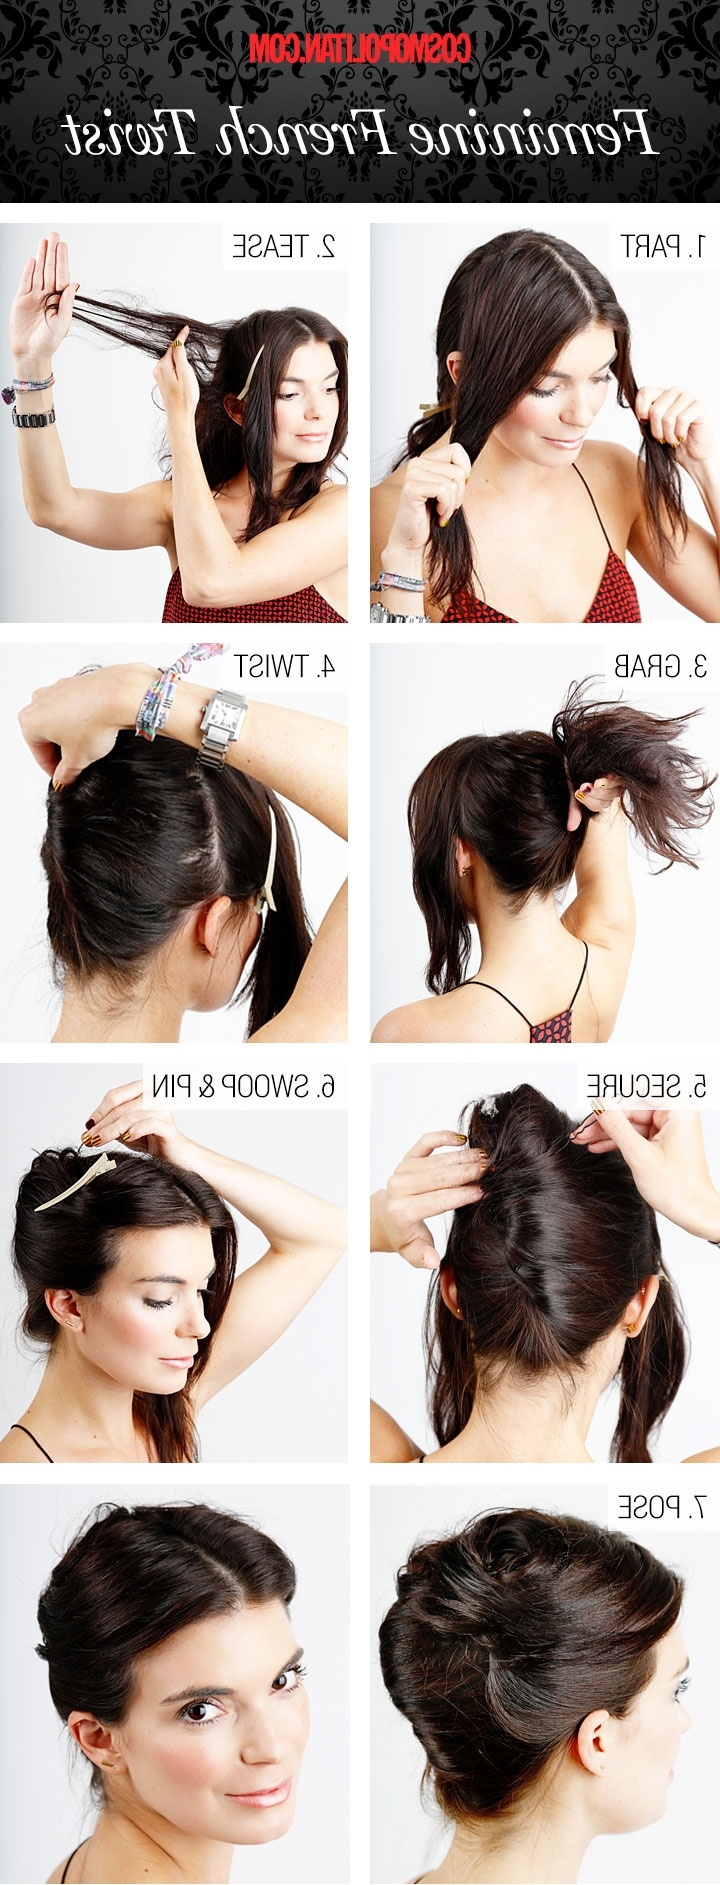 French Twist Hairstyle Pertaining To French Twist Updo Hairstyles For Short Hair (View 4 of 15)